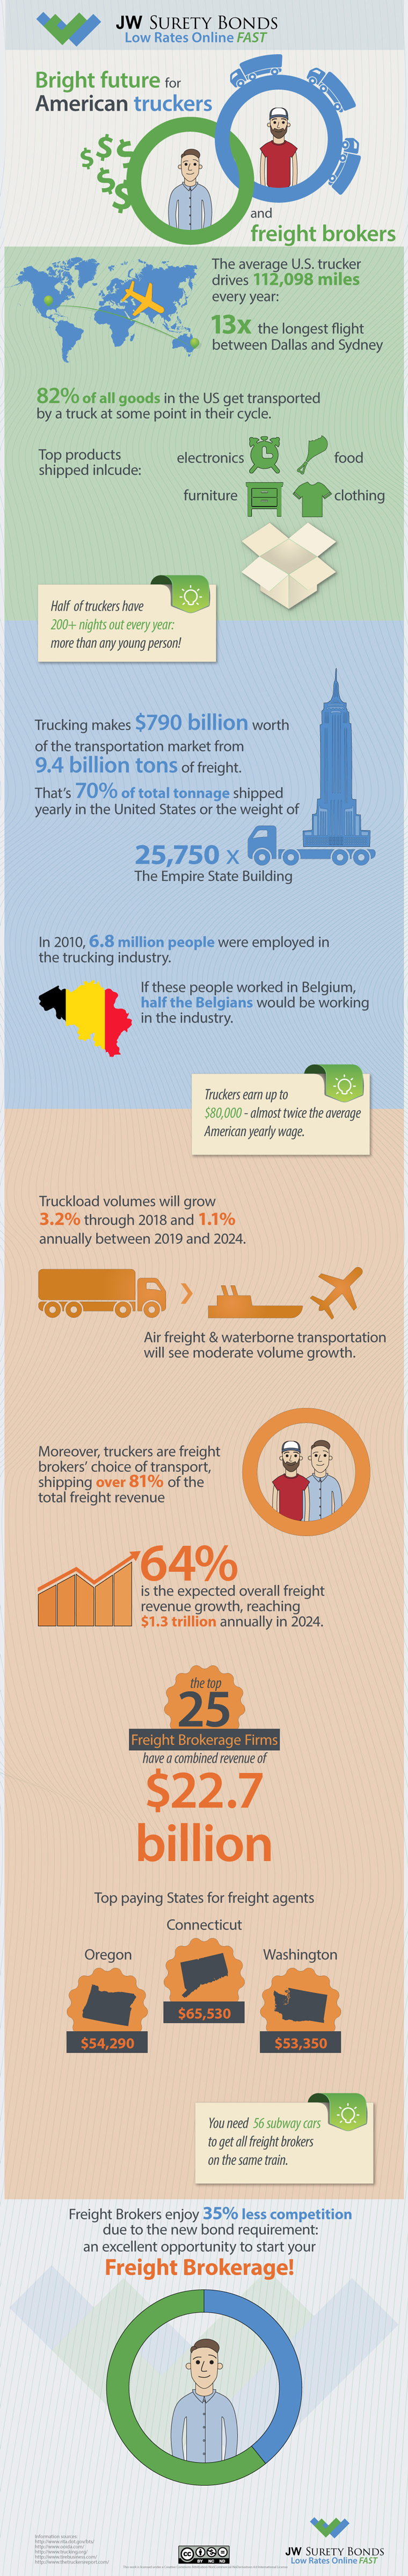 infographic on the relationship between truckers and freight brokers